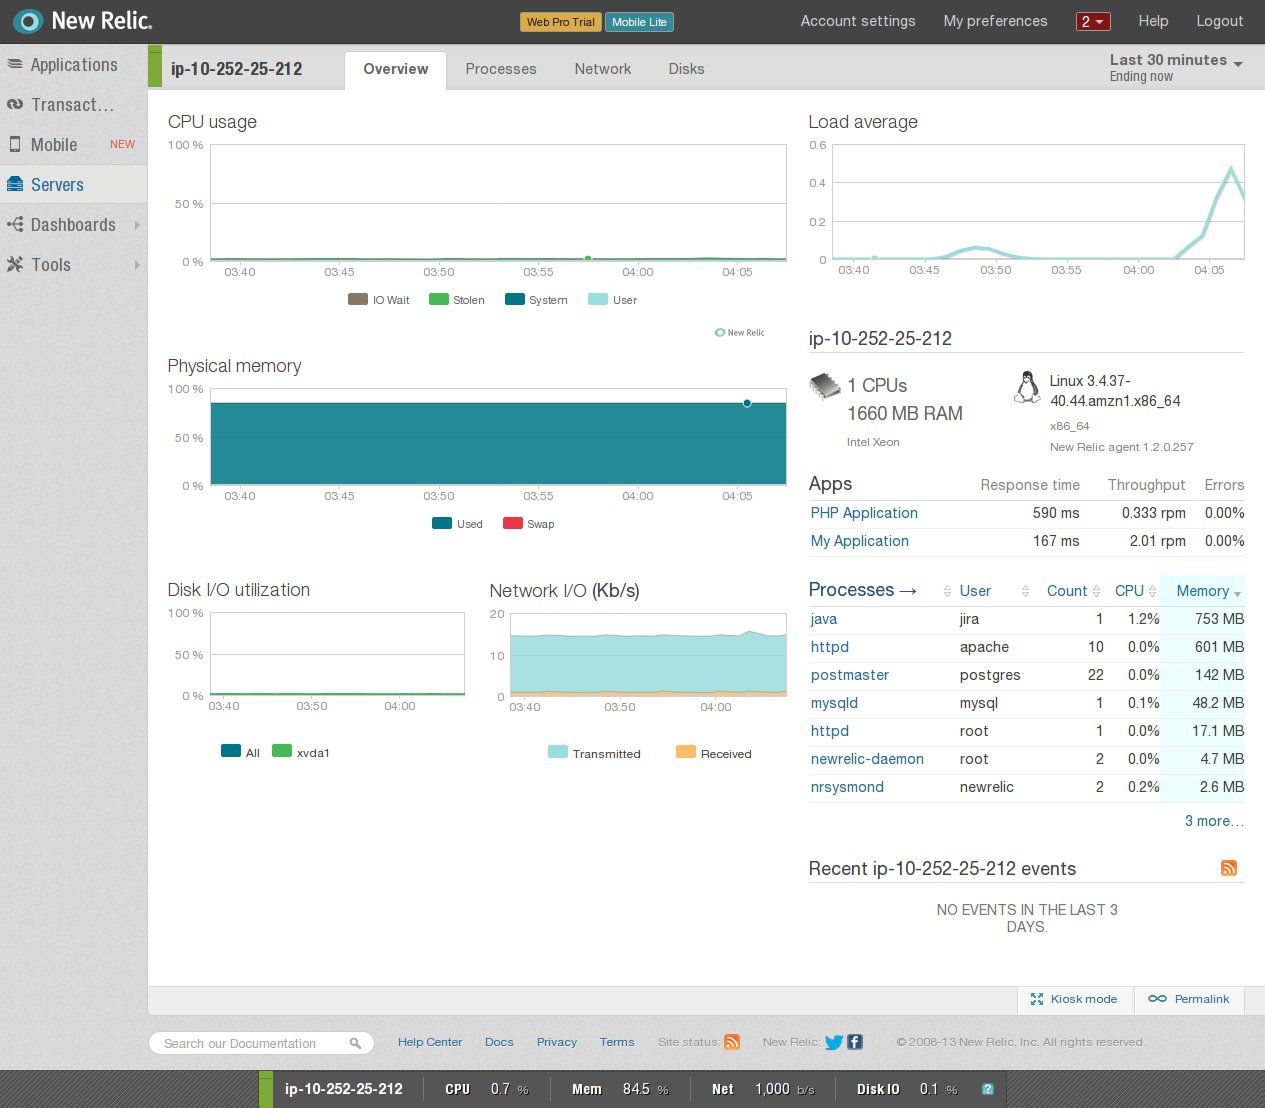 Dashboard_new_relic